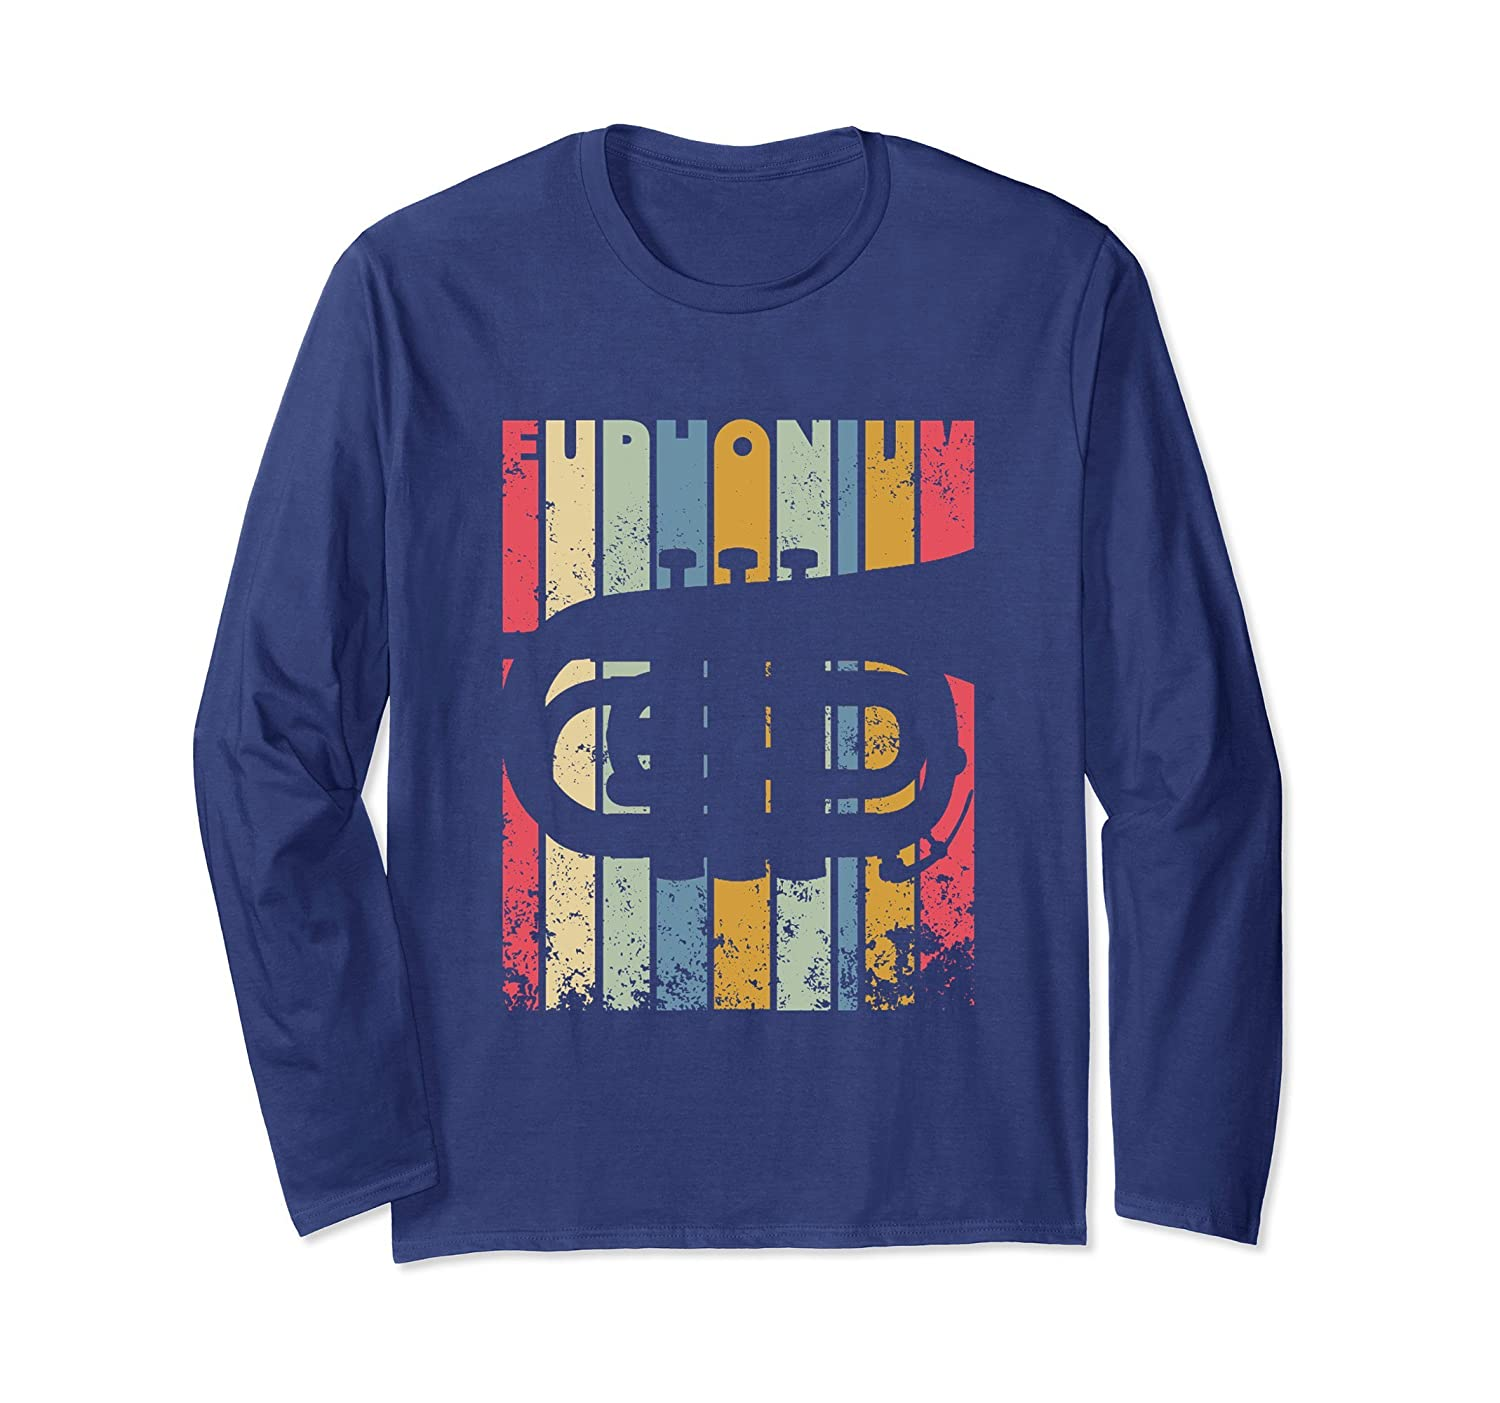 Distressed Vintage Euphonium Long Sleeve T-Shirt-mt